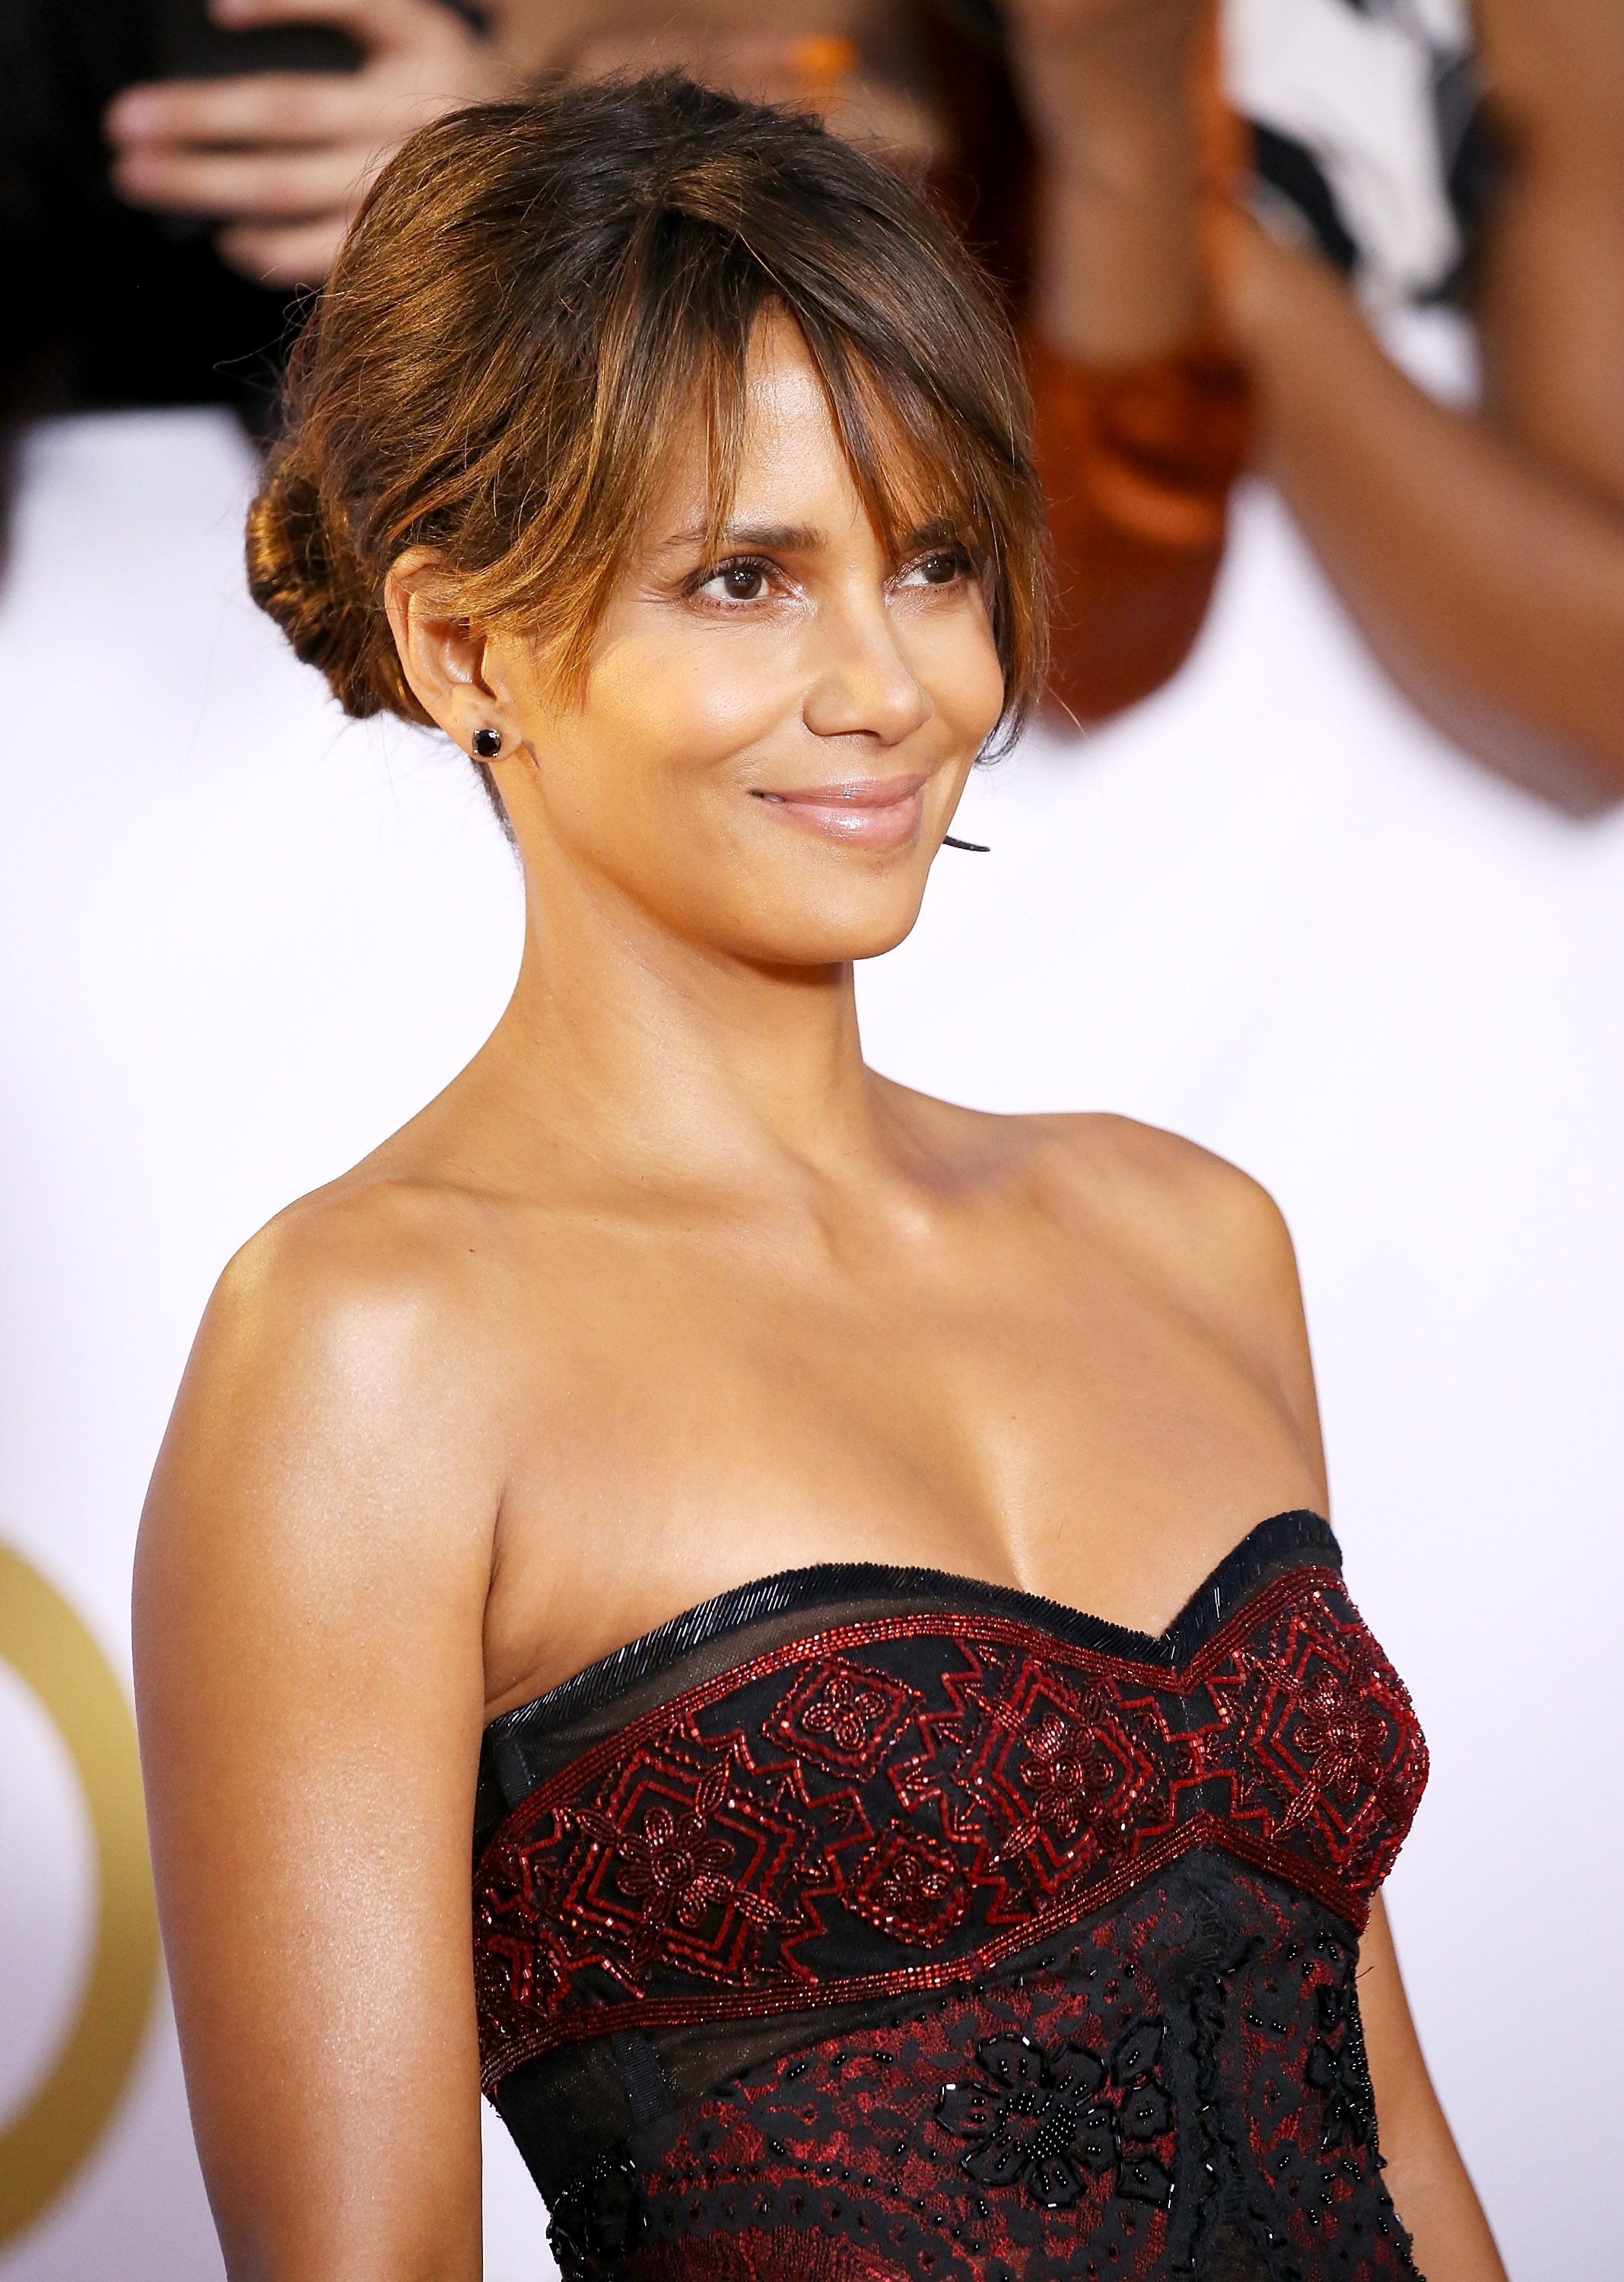 5 Skincare Tips Halle Berry, 53, Does To Look Like She's In Her 30s